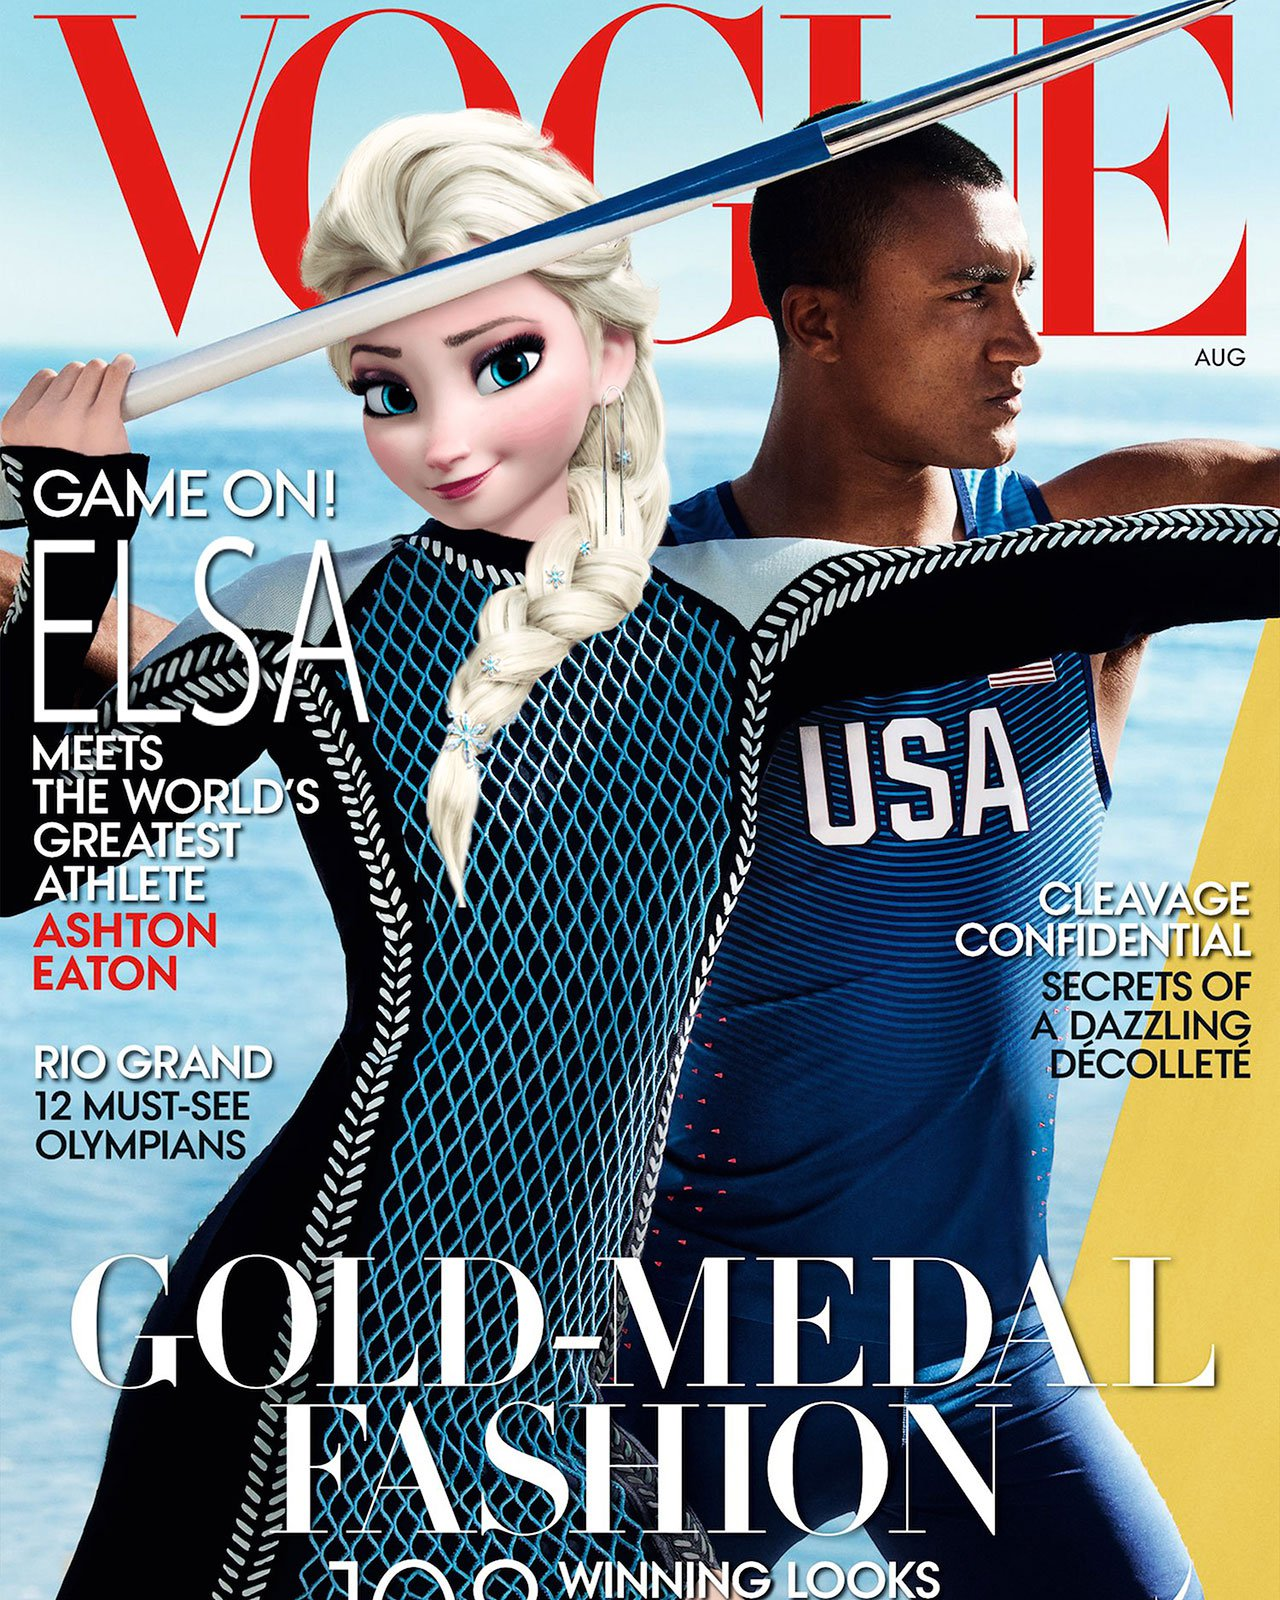 s3_animation_in_reality_by_gregory_masouras_gigi_hadid_as_elsa_meets_ashton_eaton_august_2016_cover_vogue_photographed_by_mario_testino_yatzer